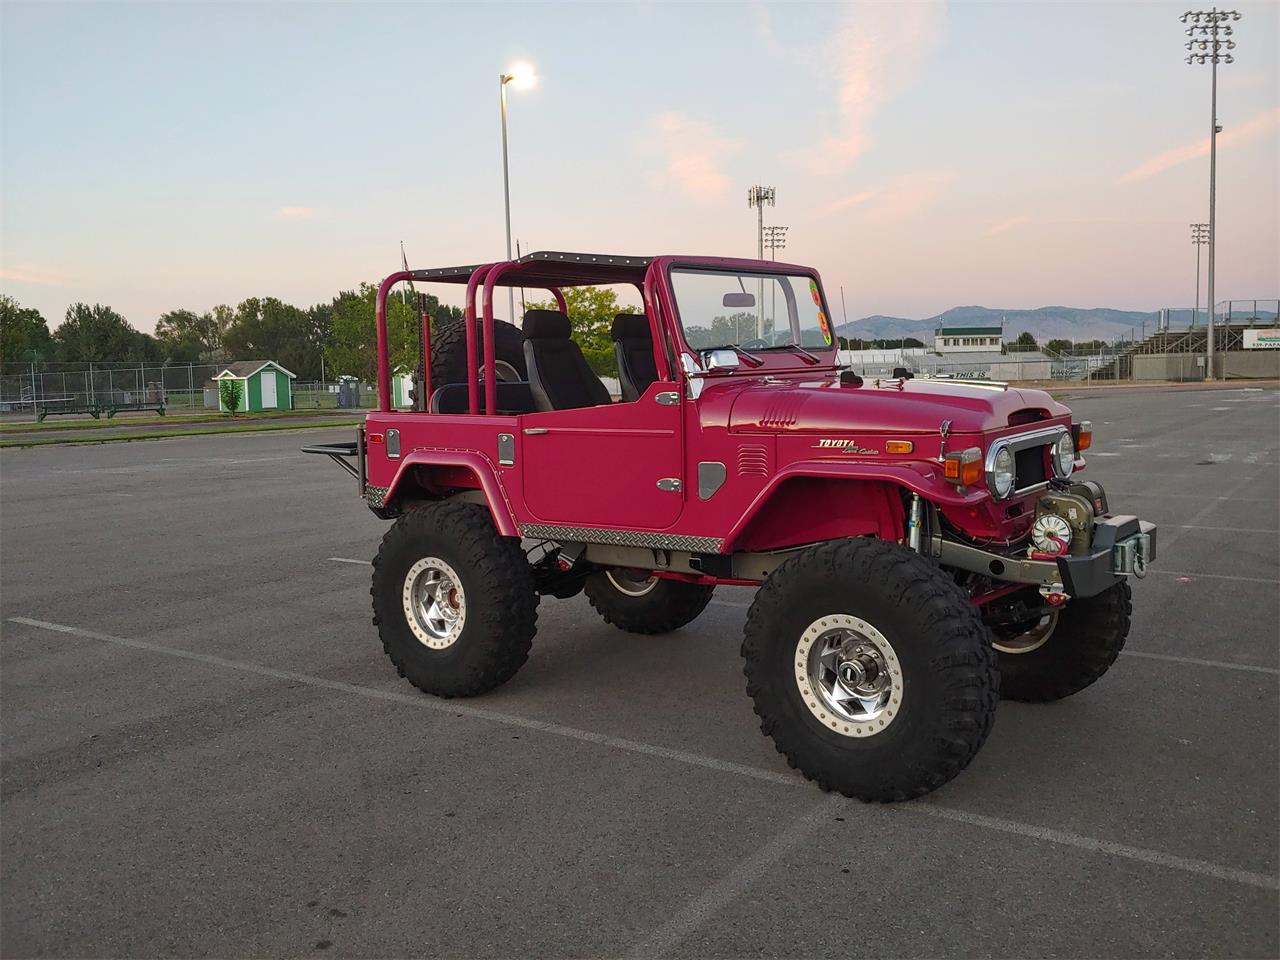 Large Picture of 1973 Land Cruiser FJ40 Offered by a Private Seller - QYQV